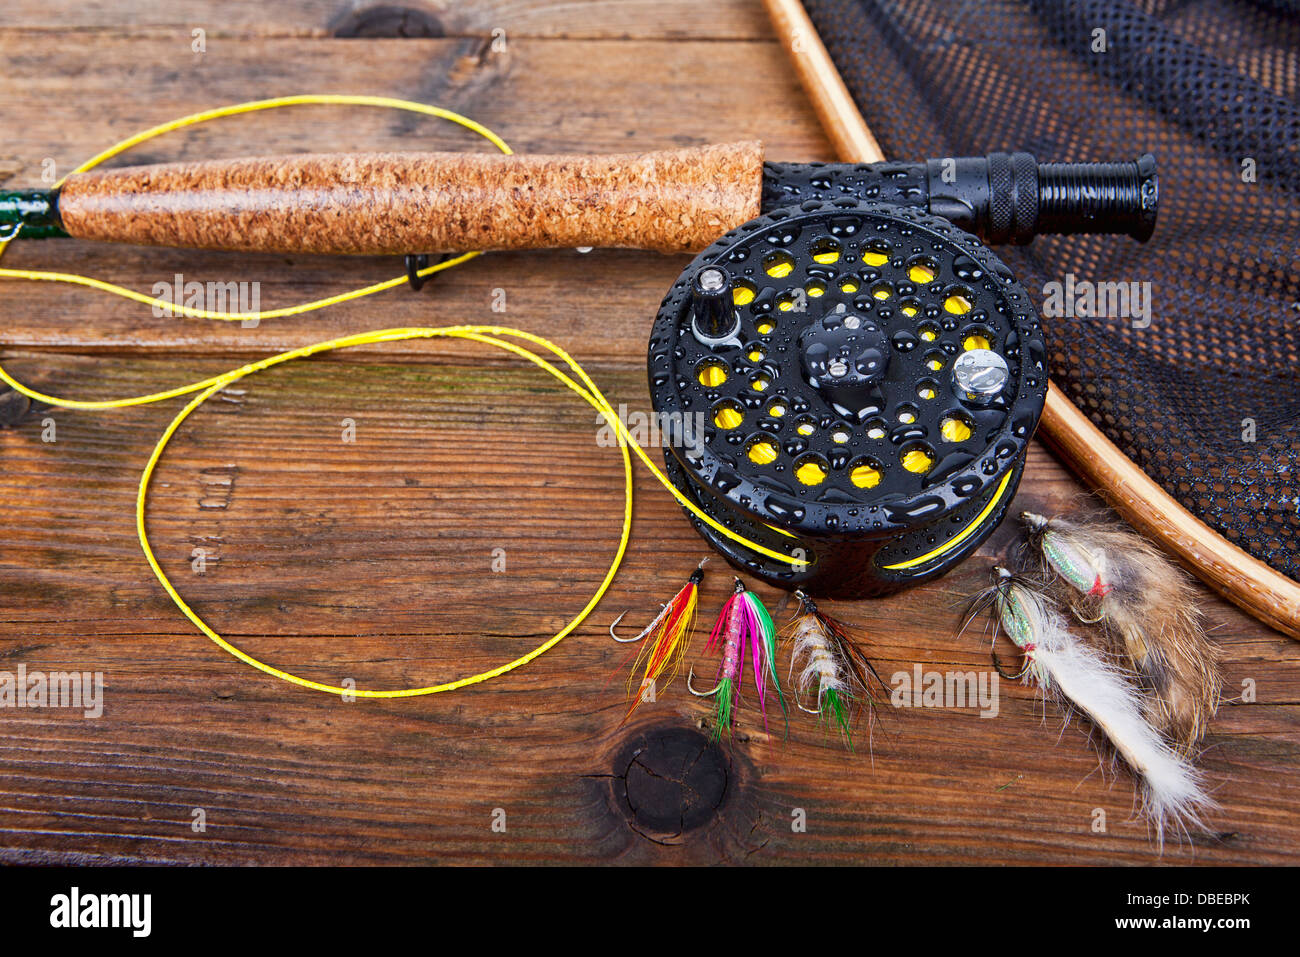 fly fishing rod and reel on a wet wooden background, focus on the reel. - Stock Image